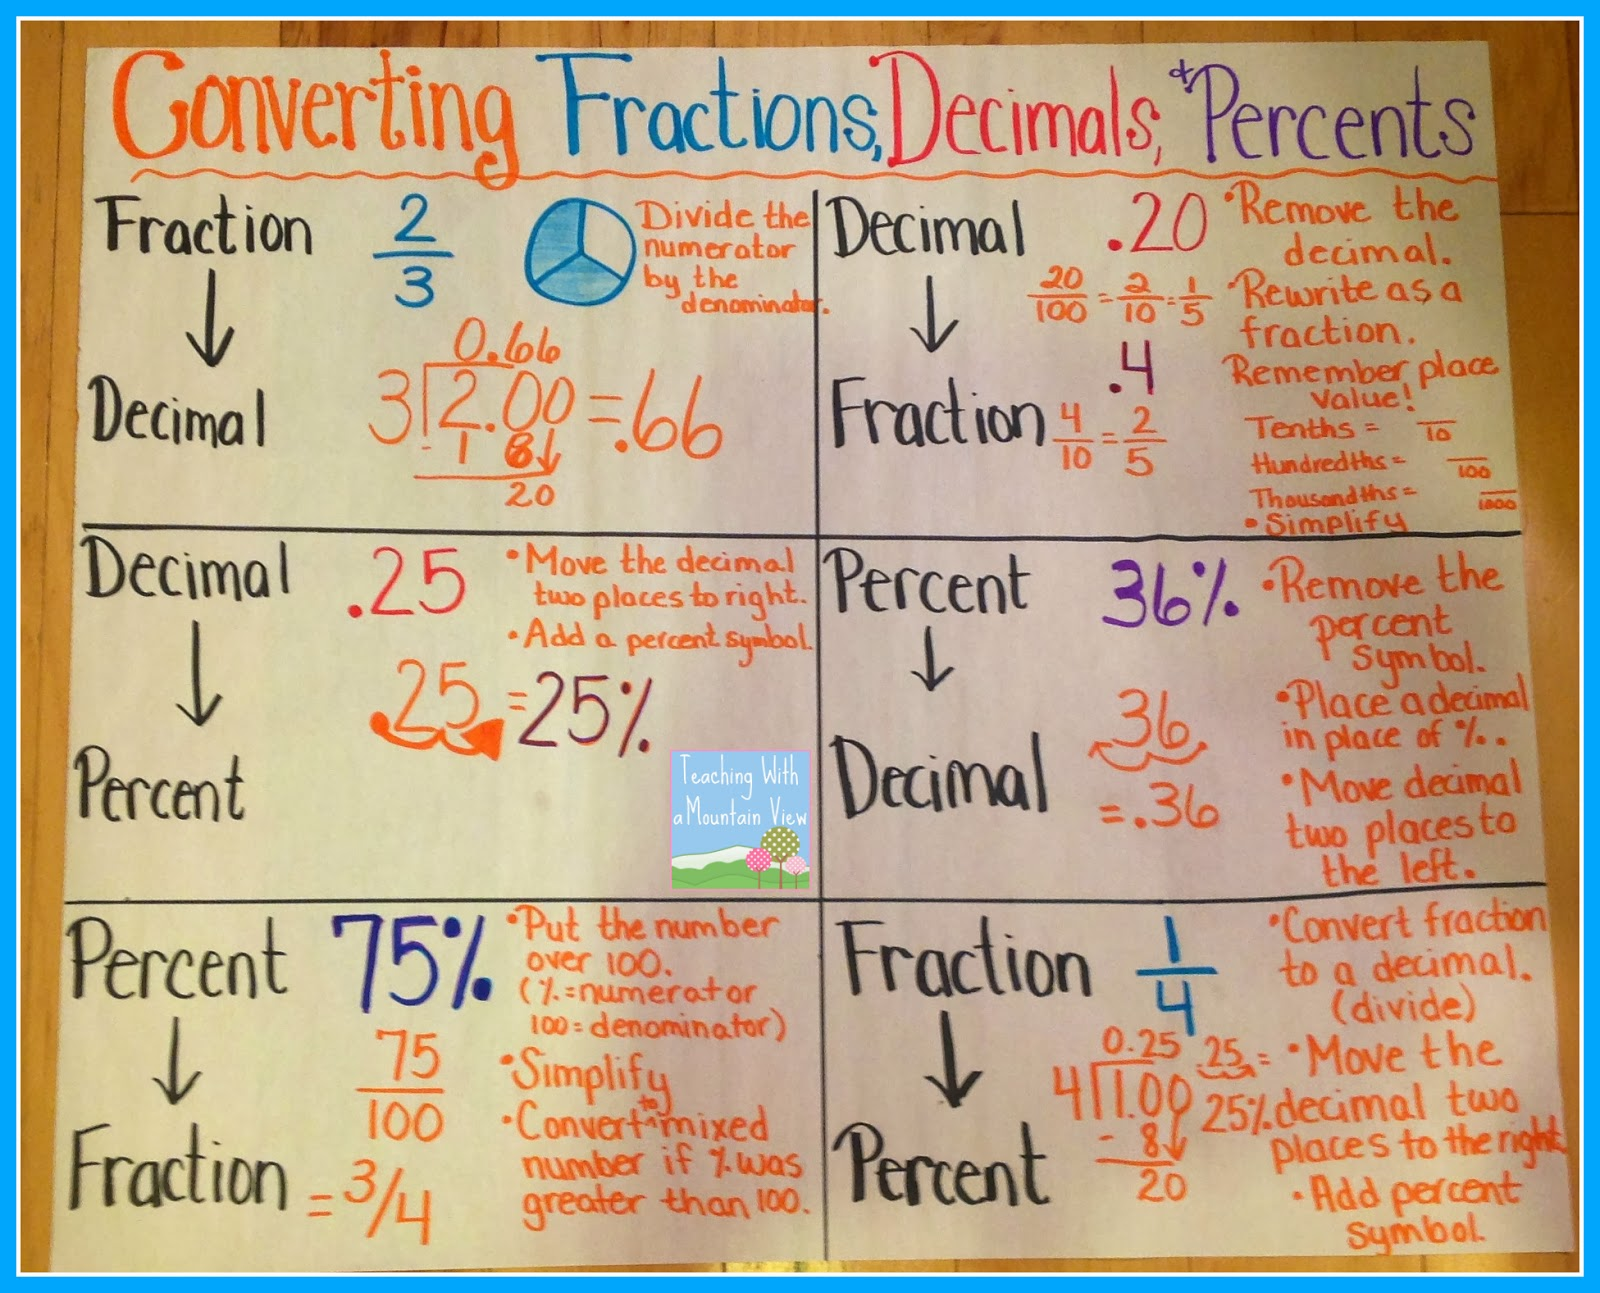 Teaching with a mountain view percents decimals fractions and a converting fractions decimals and percentage anchor chart nvjuhfo Image collections